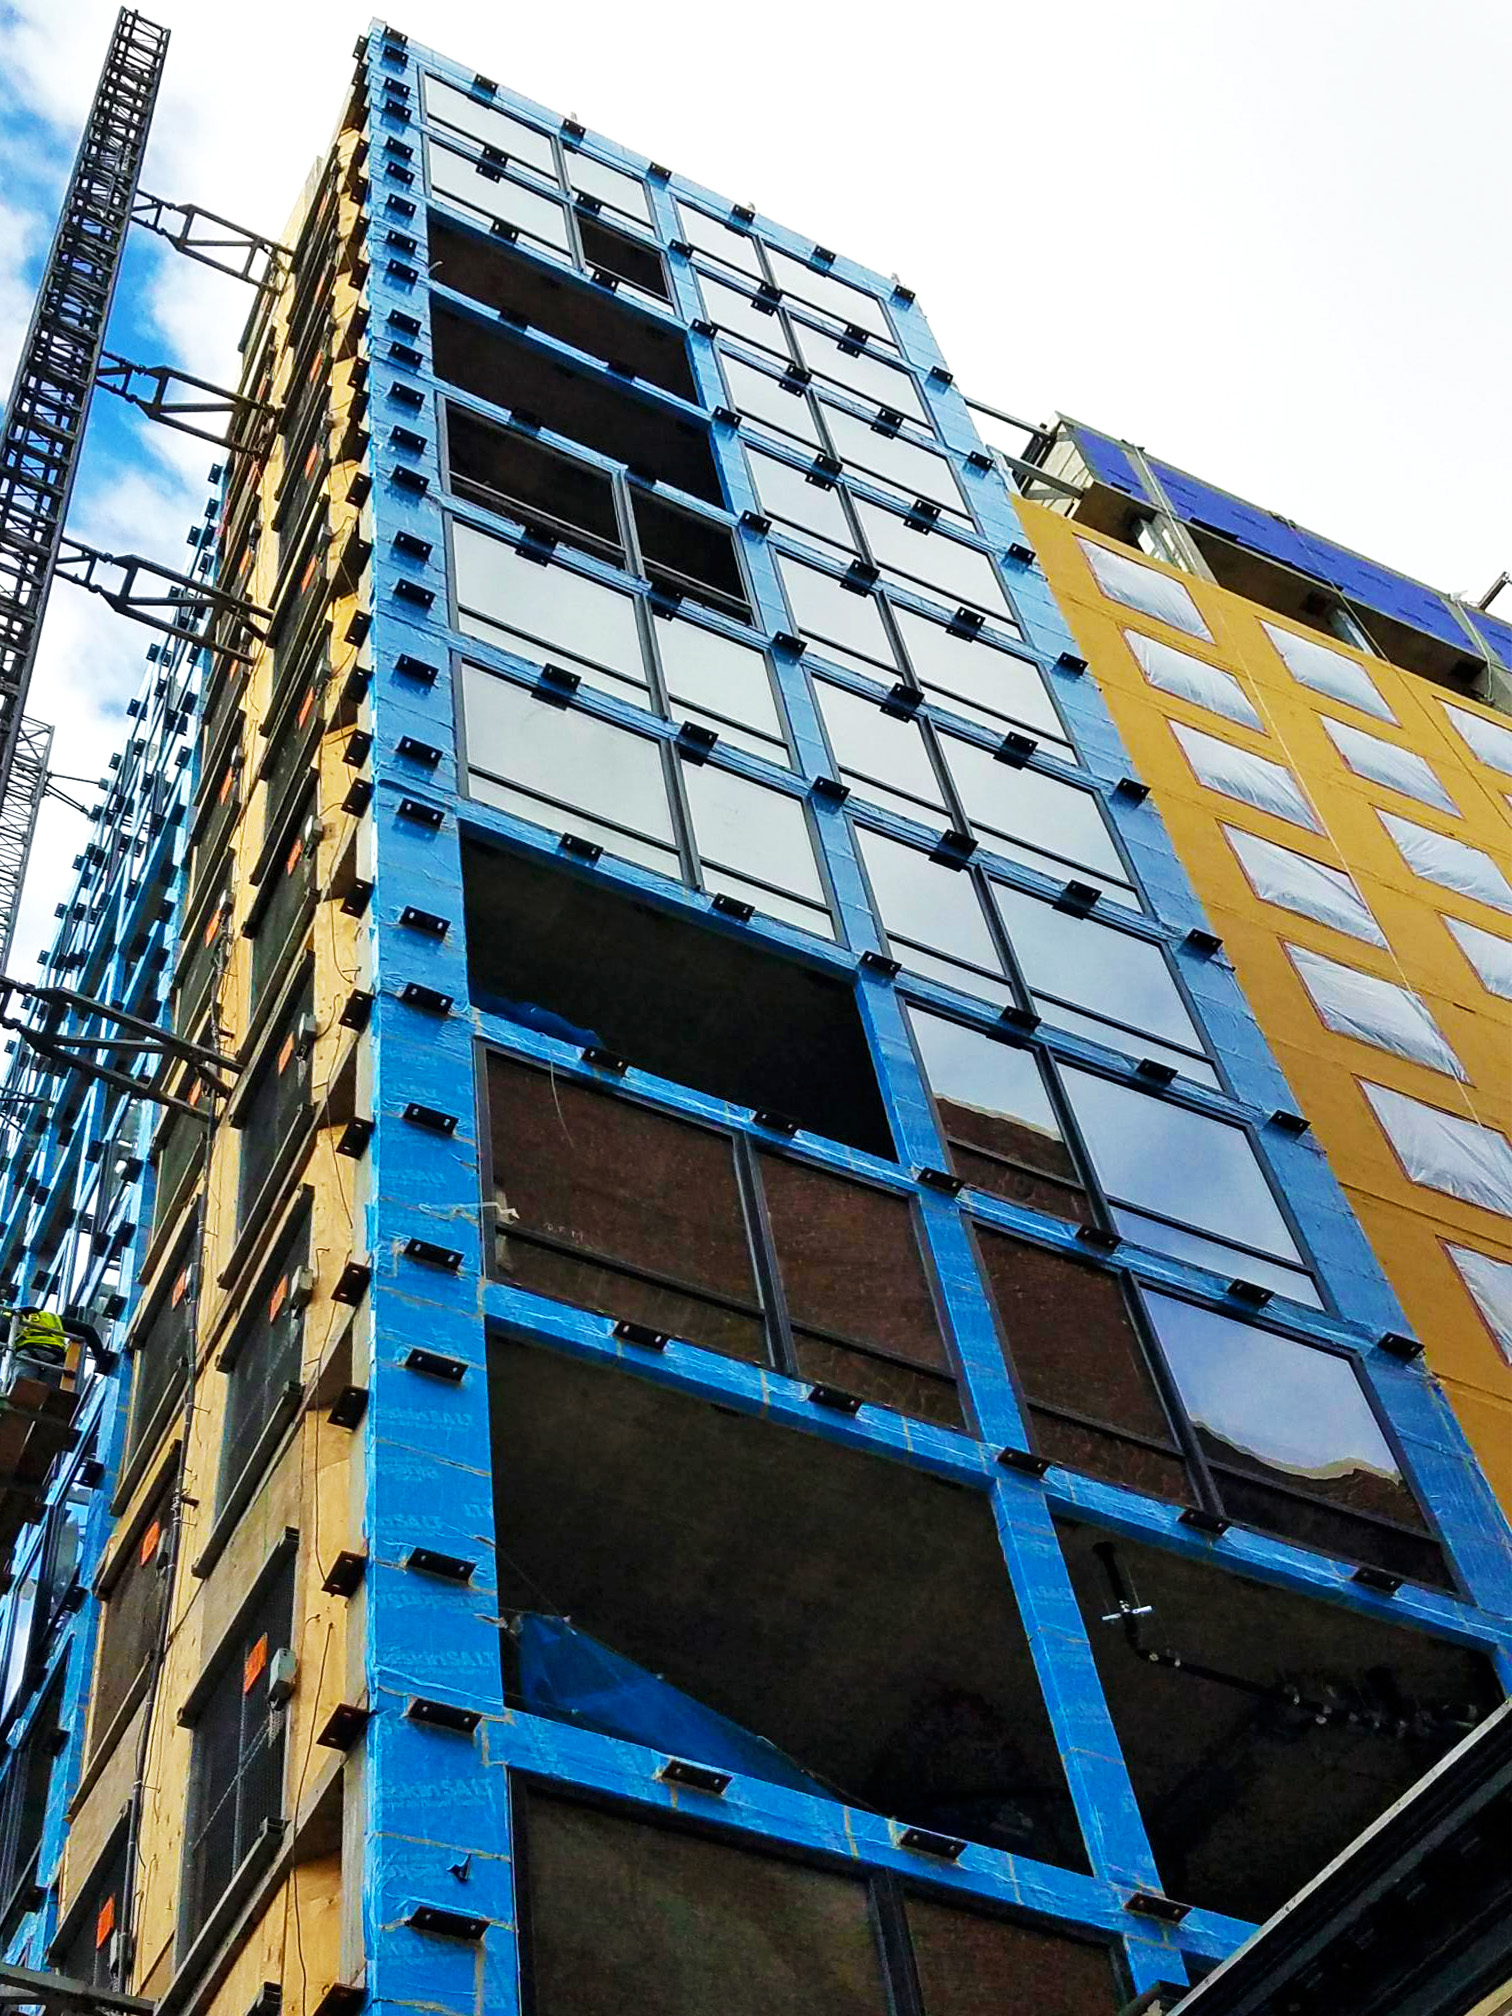 The Moxy Hotel is in progress and looking good! INTUS Windows are being installed to give guests a quiet and comfortable stay (STC45/OITC38).